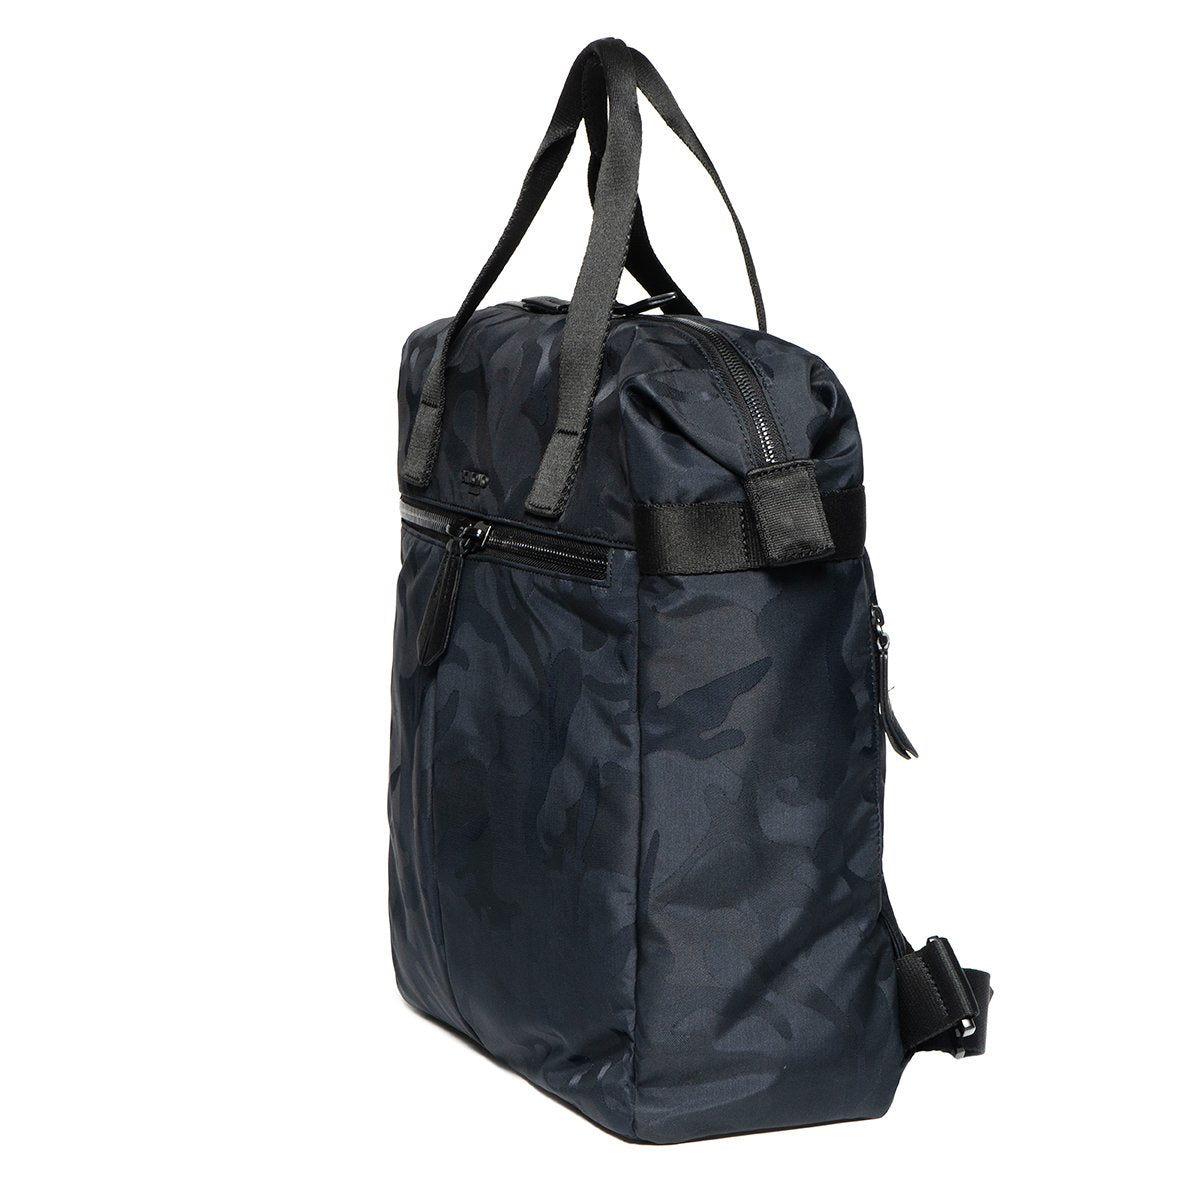 "Santiago Laptop Tote Backpack - 14"" -  14"" 